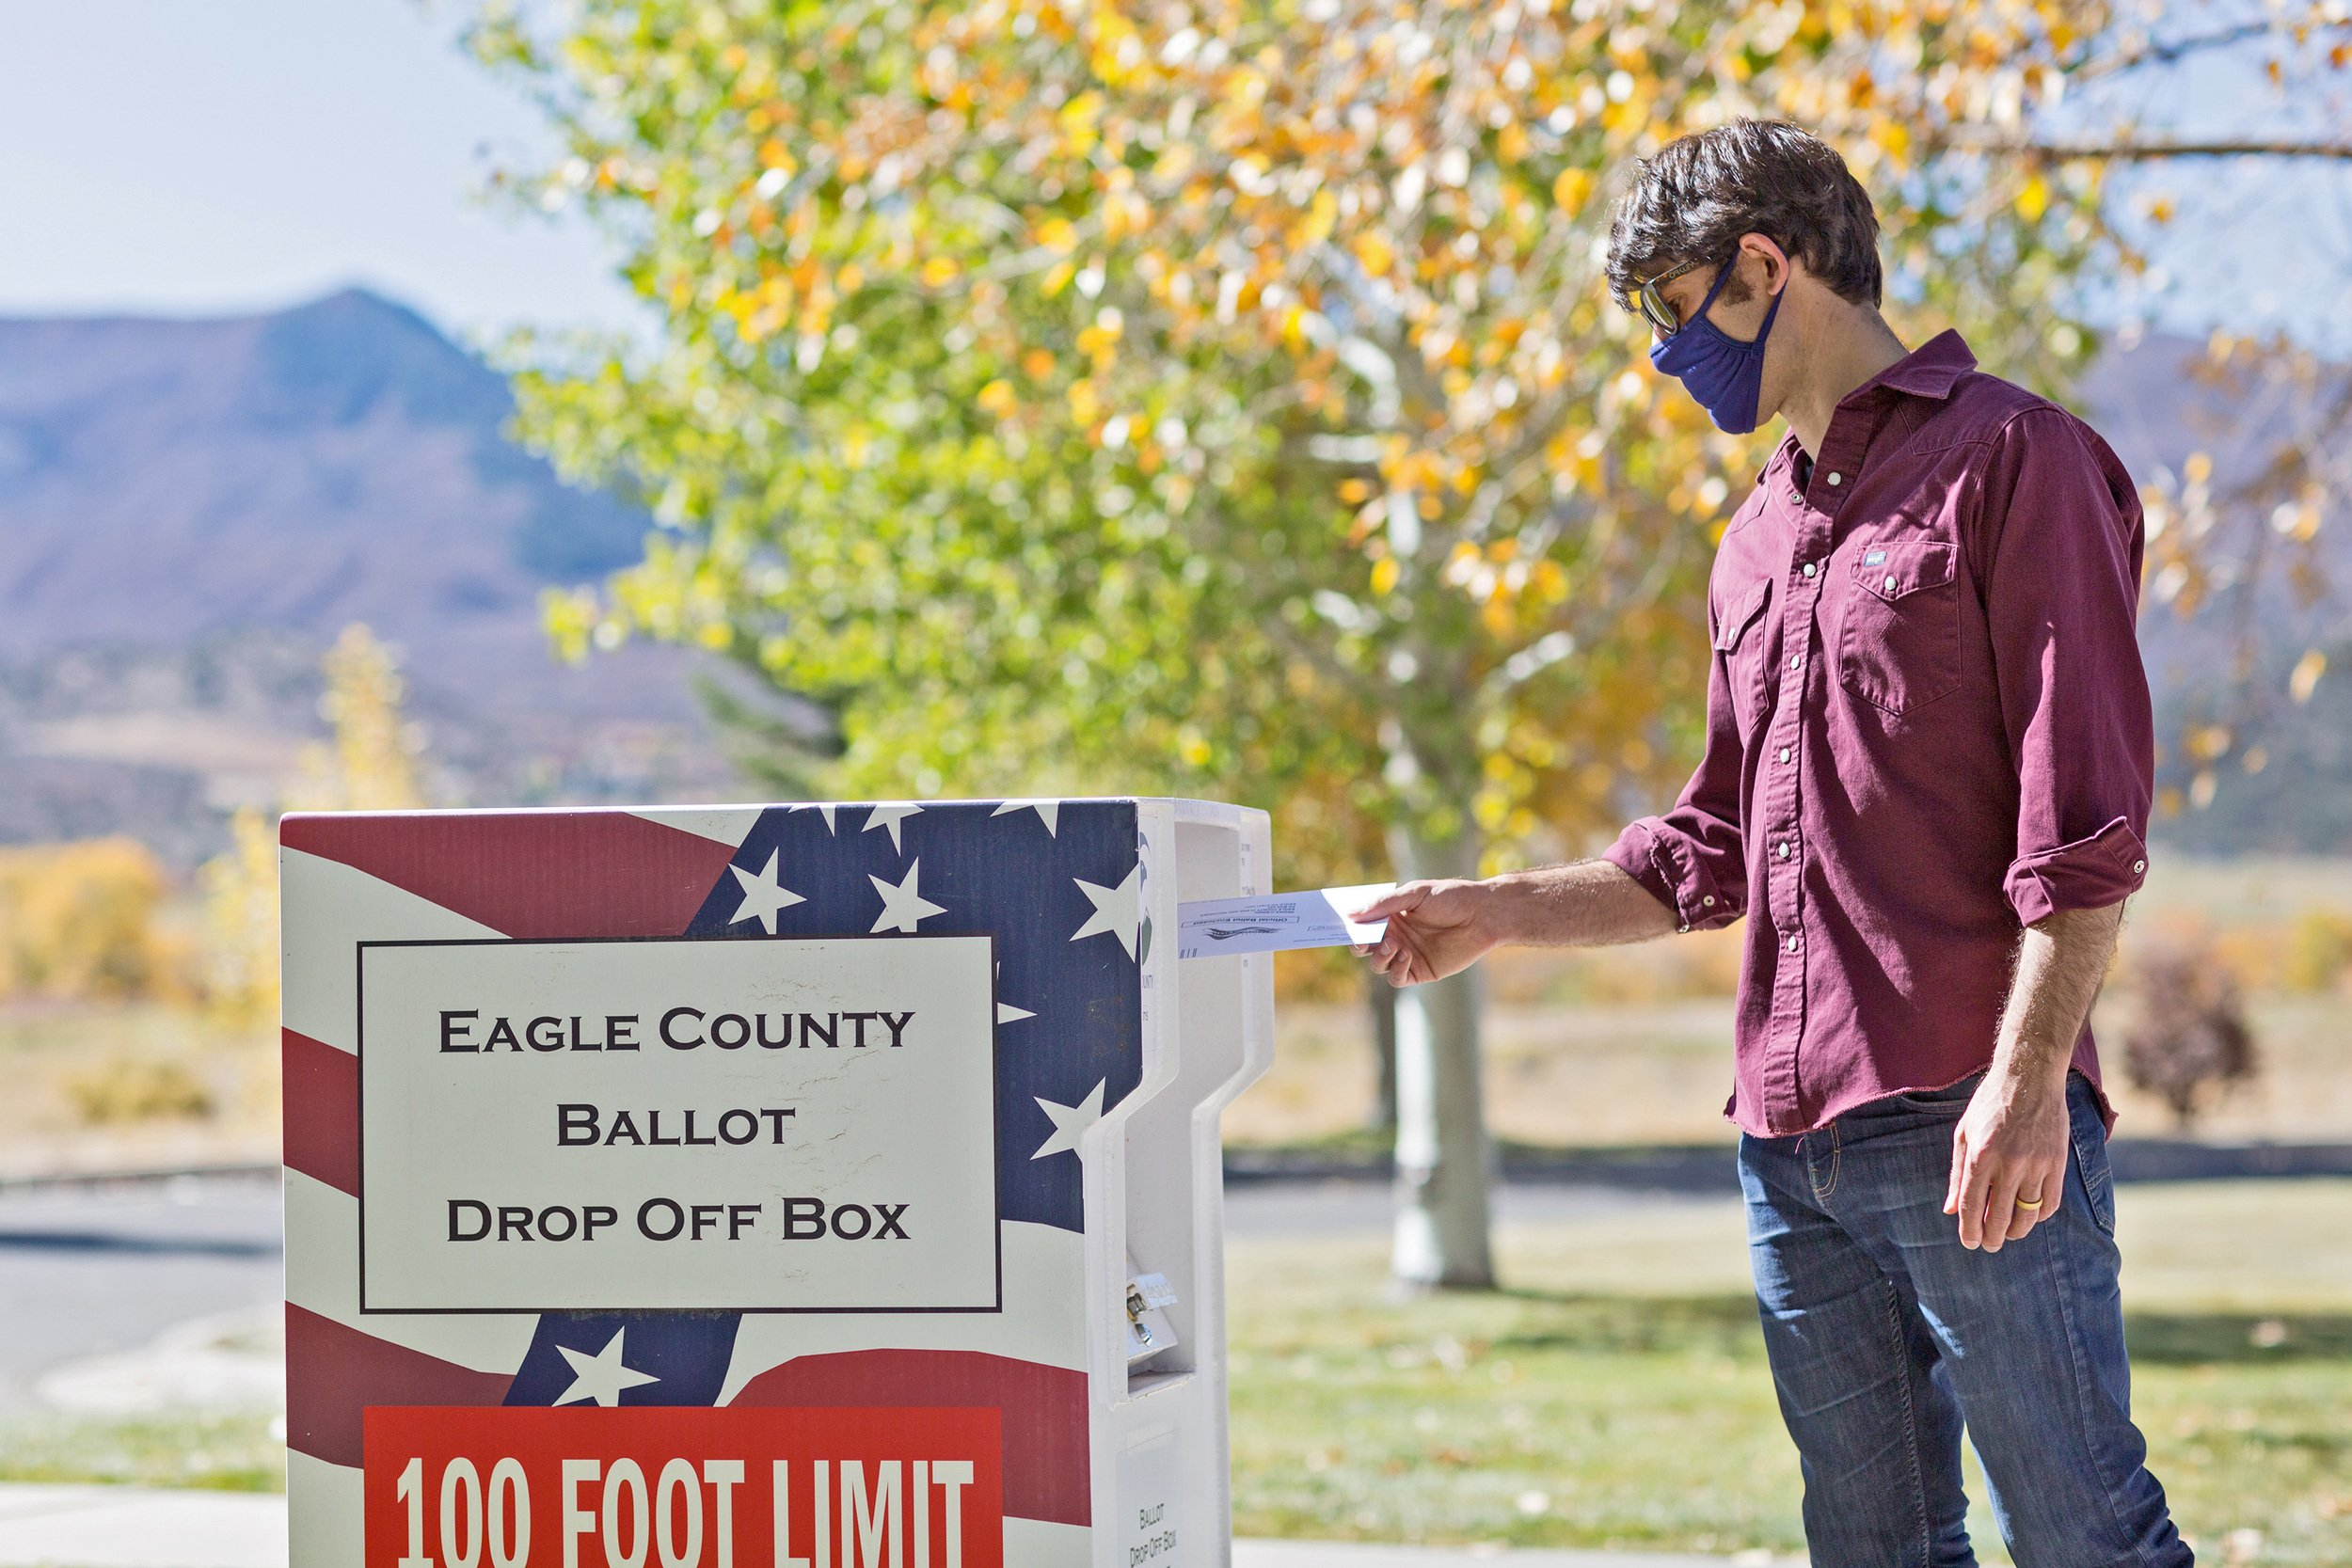 Mail-in voting is old hat in Colorado thumbnail